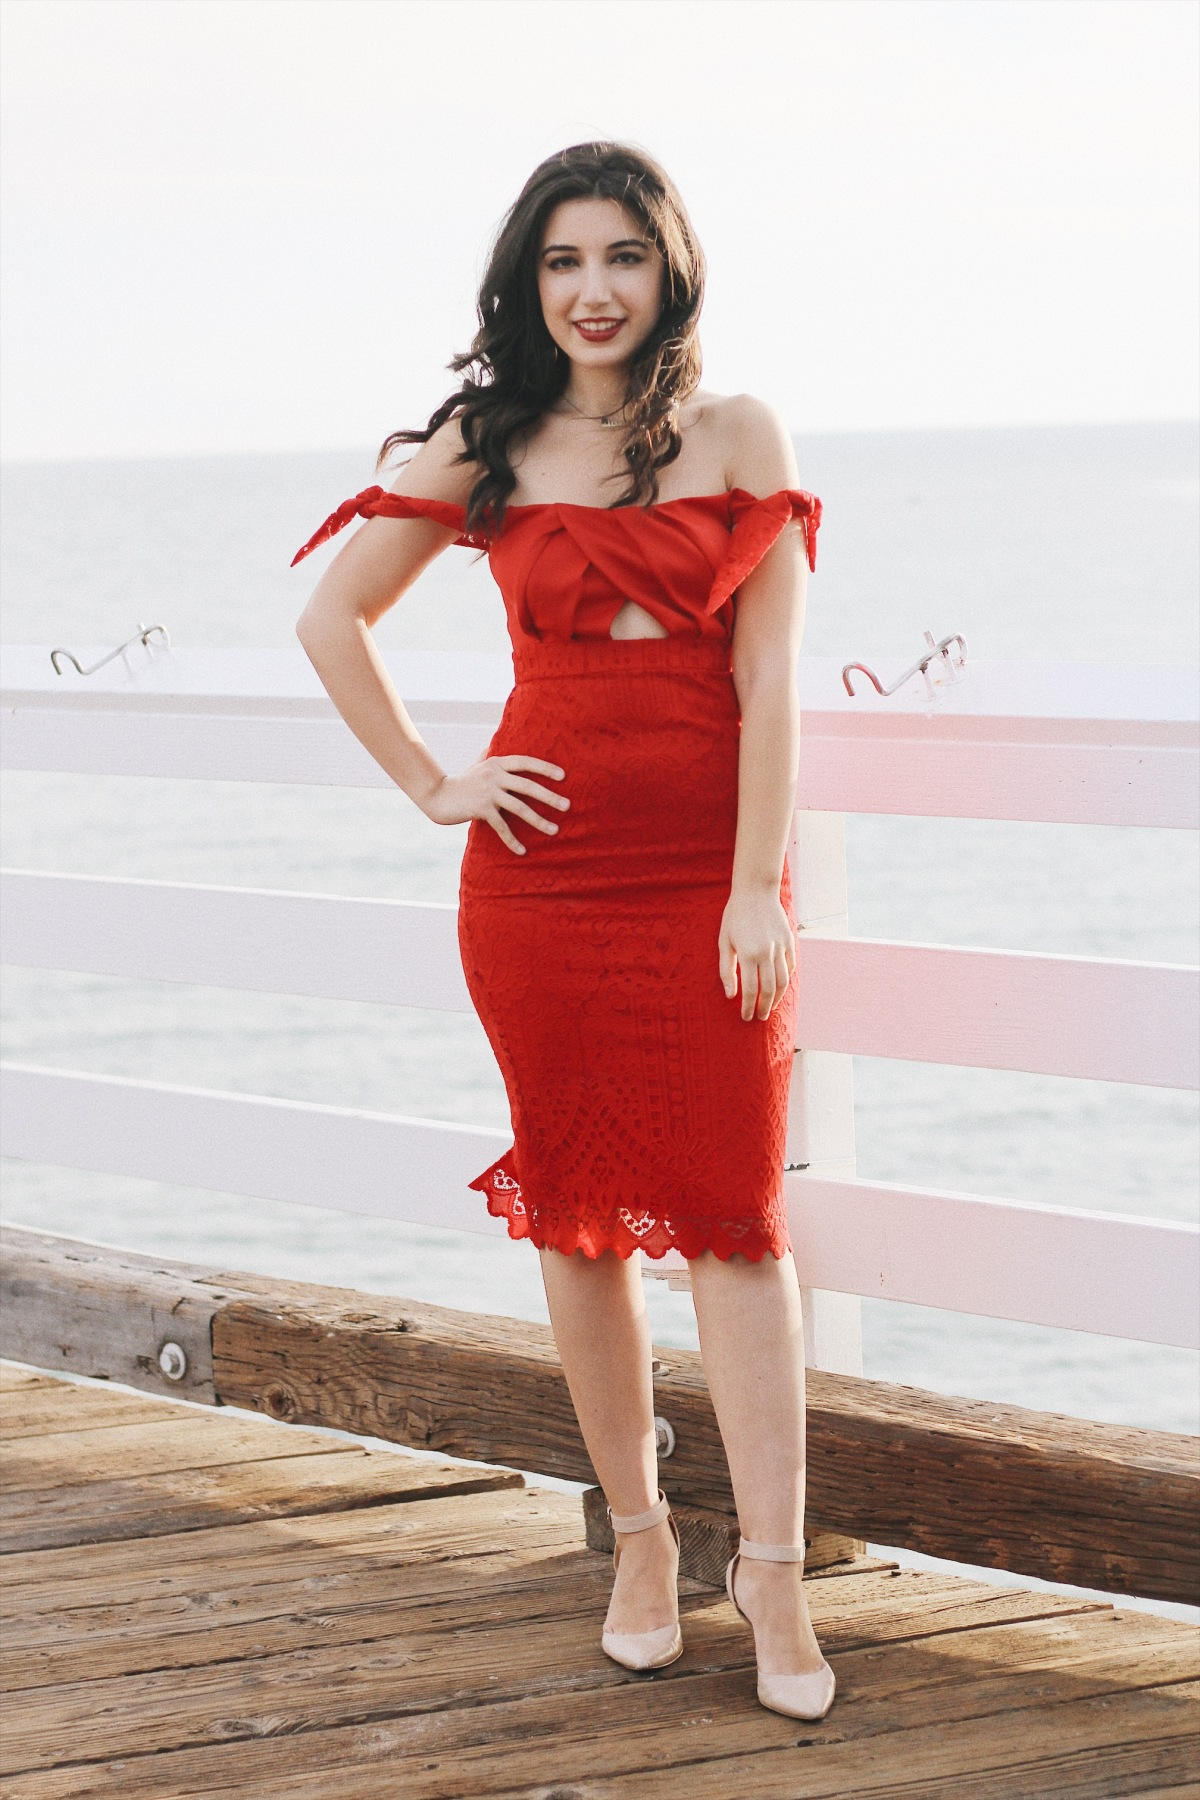 ASOS, Red, lookbook, off the shoulder, dress, formal dress, red dress, lace dress, fashion, fashion blogger, Malibu Farm, Malibu Pier, California, LA Style, evening style, red lips, curly hair, Old Hollywood, sorority formal photos, photography, VSCO Cam, VSCO fashion, curly hair